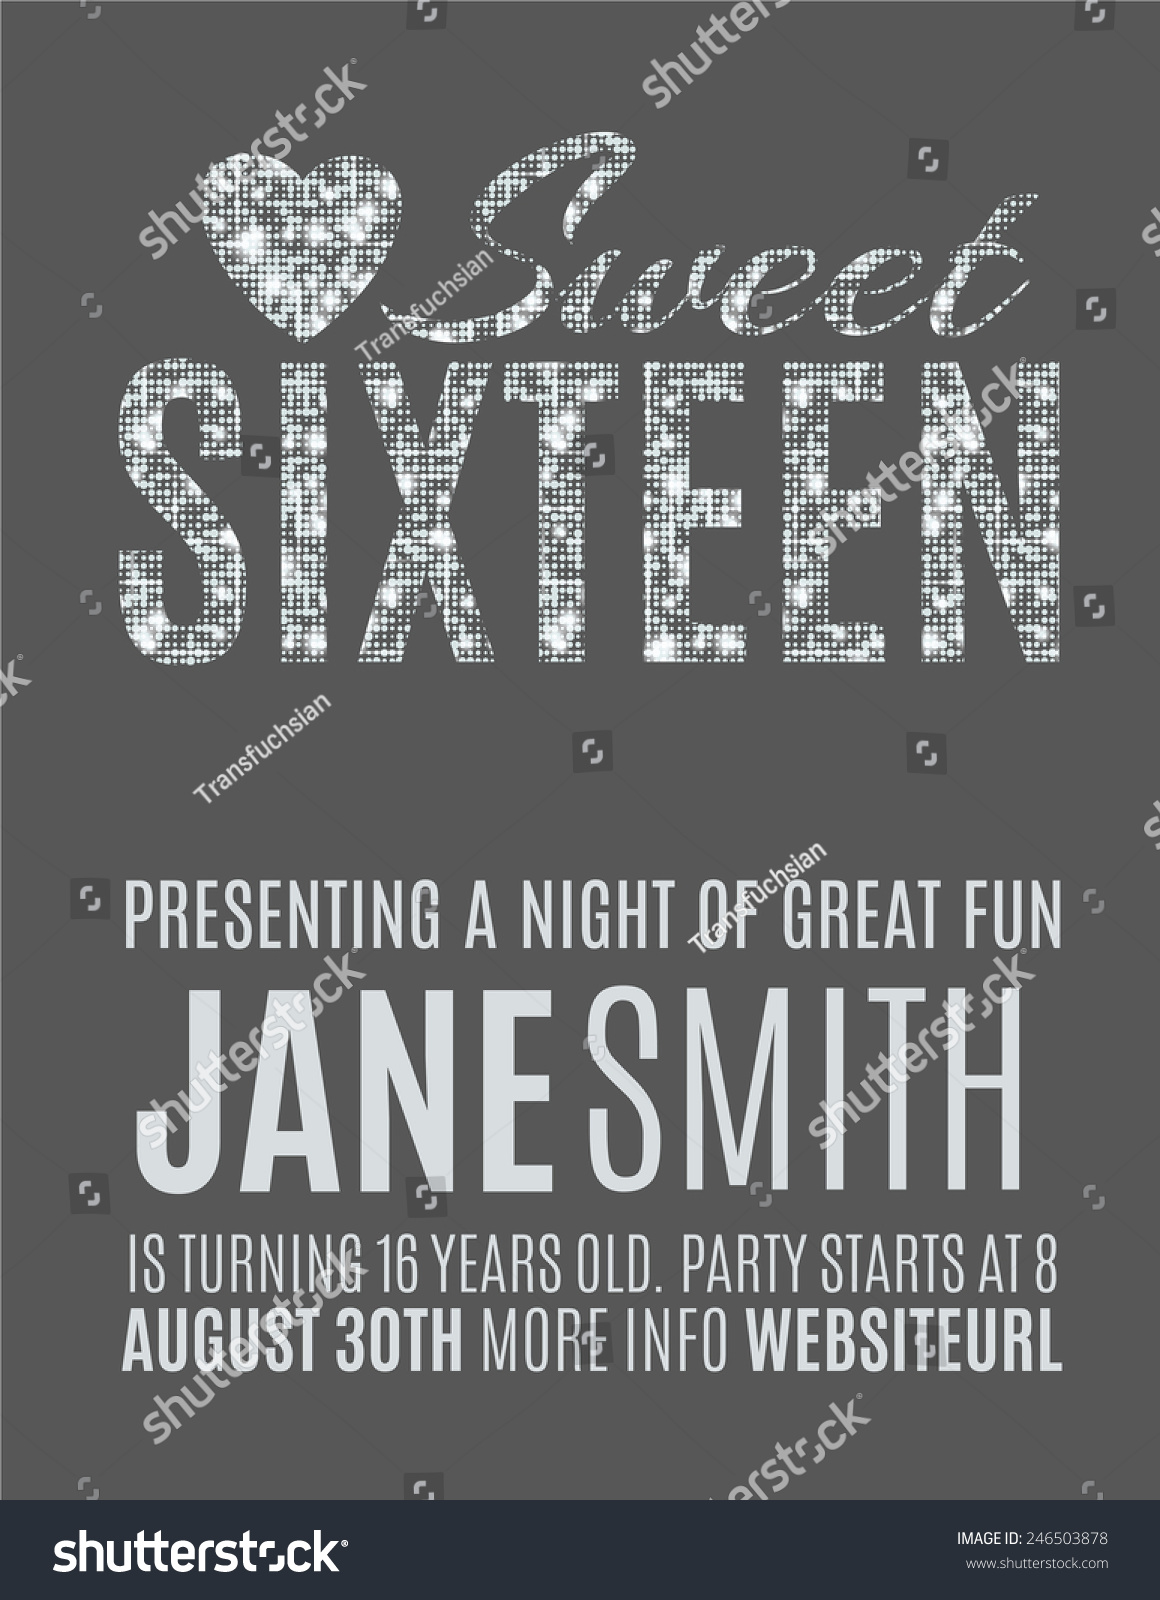 sweet sixteen glitter party invitation flyer stock vector sweet sixteen glitter party invitation flyer template design